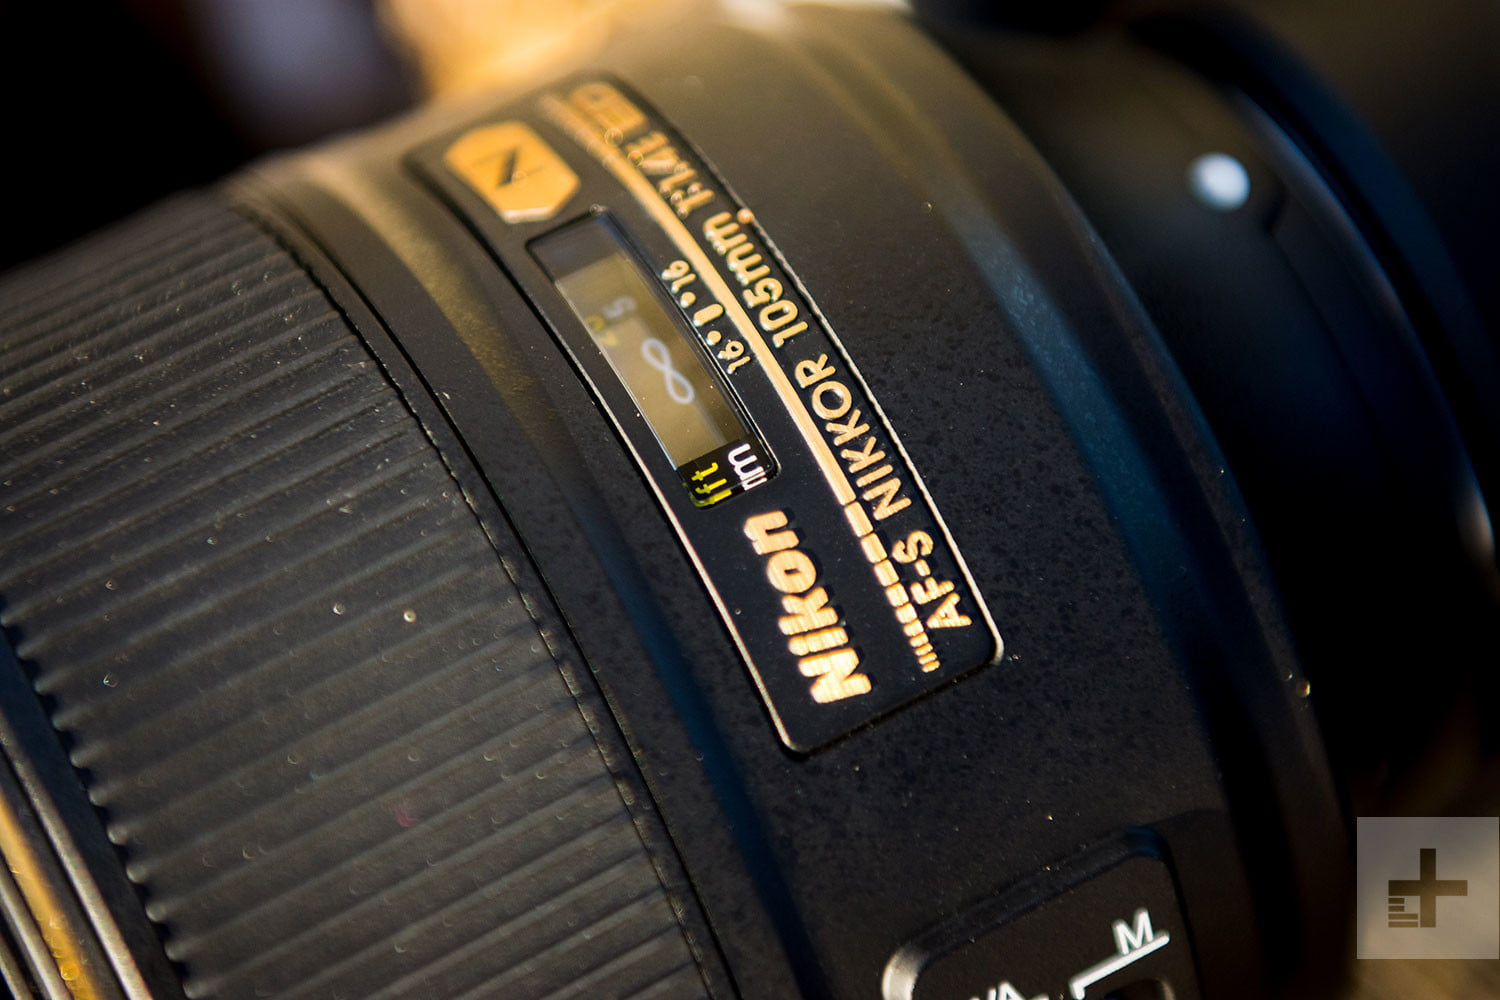 nikon 105mm f 1 4e ed review incredibly close to the perfect lens